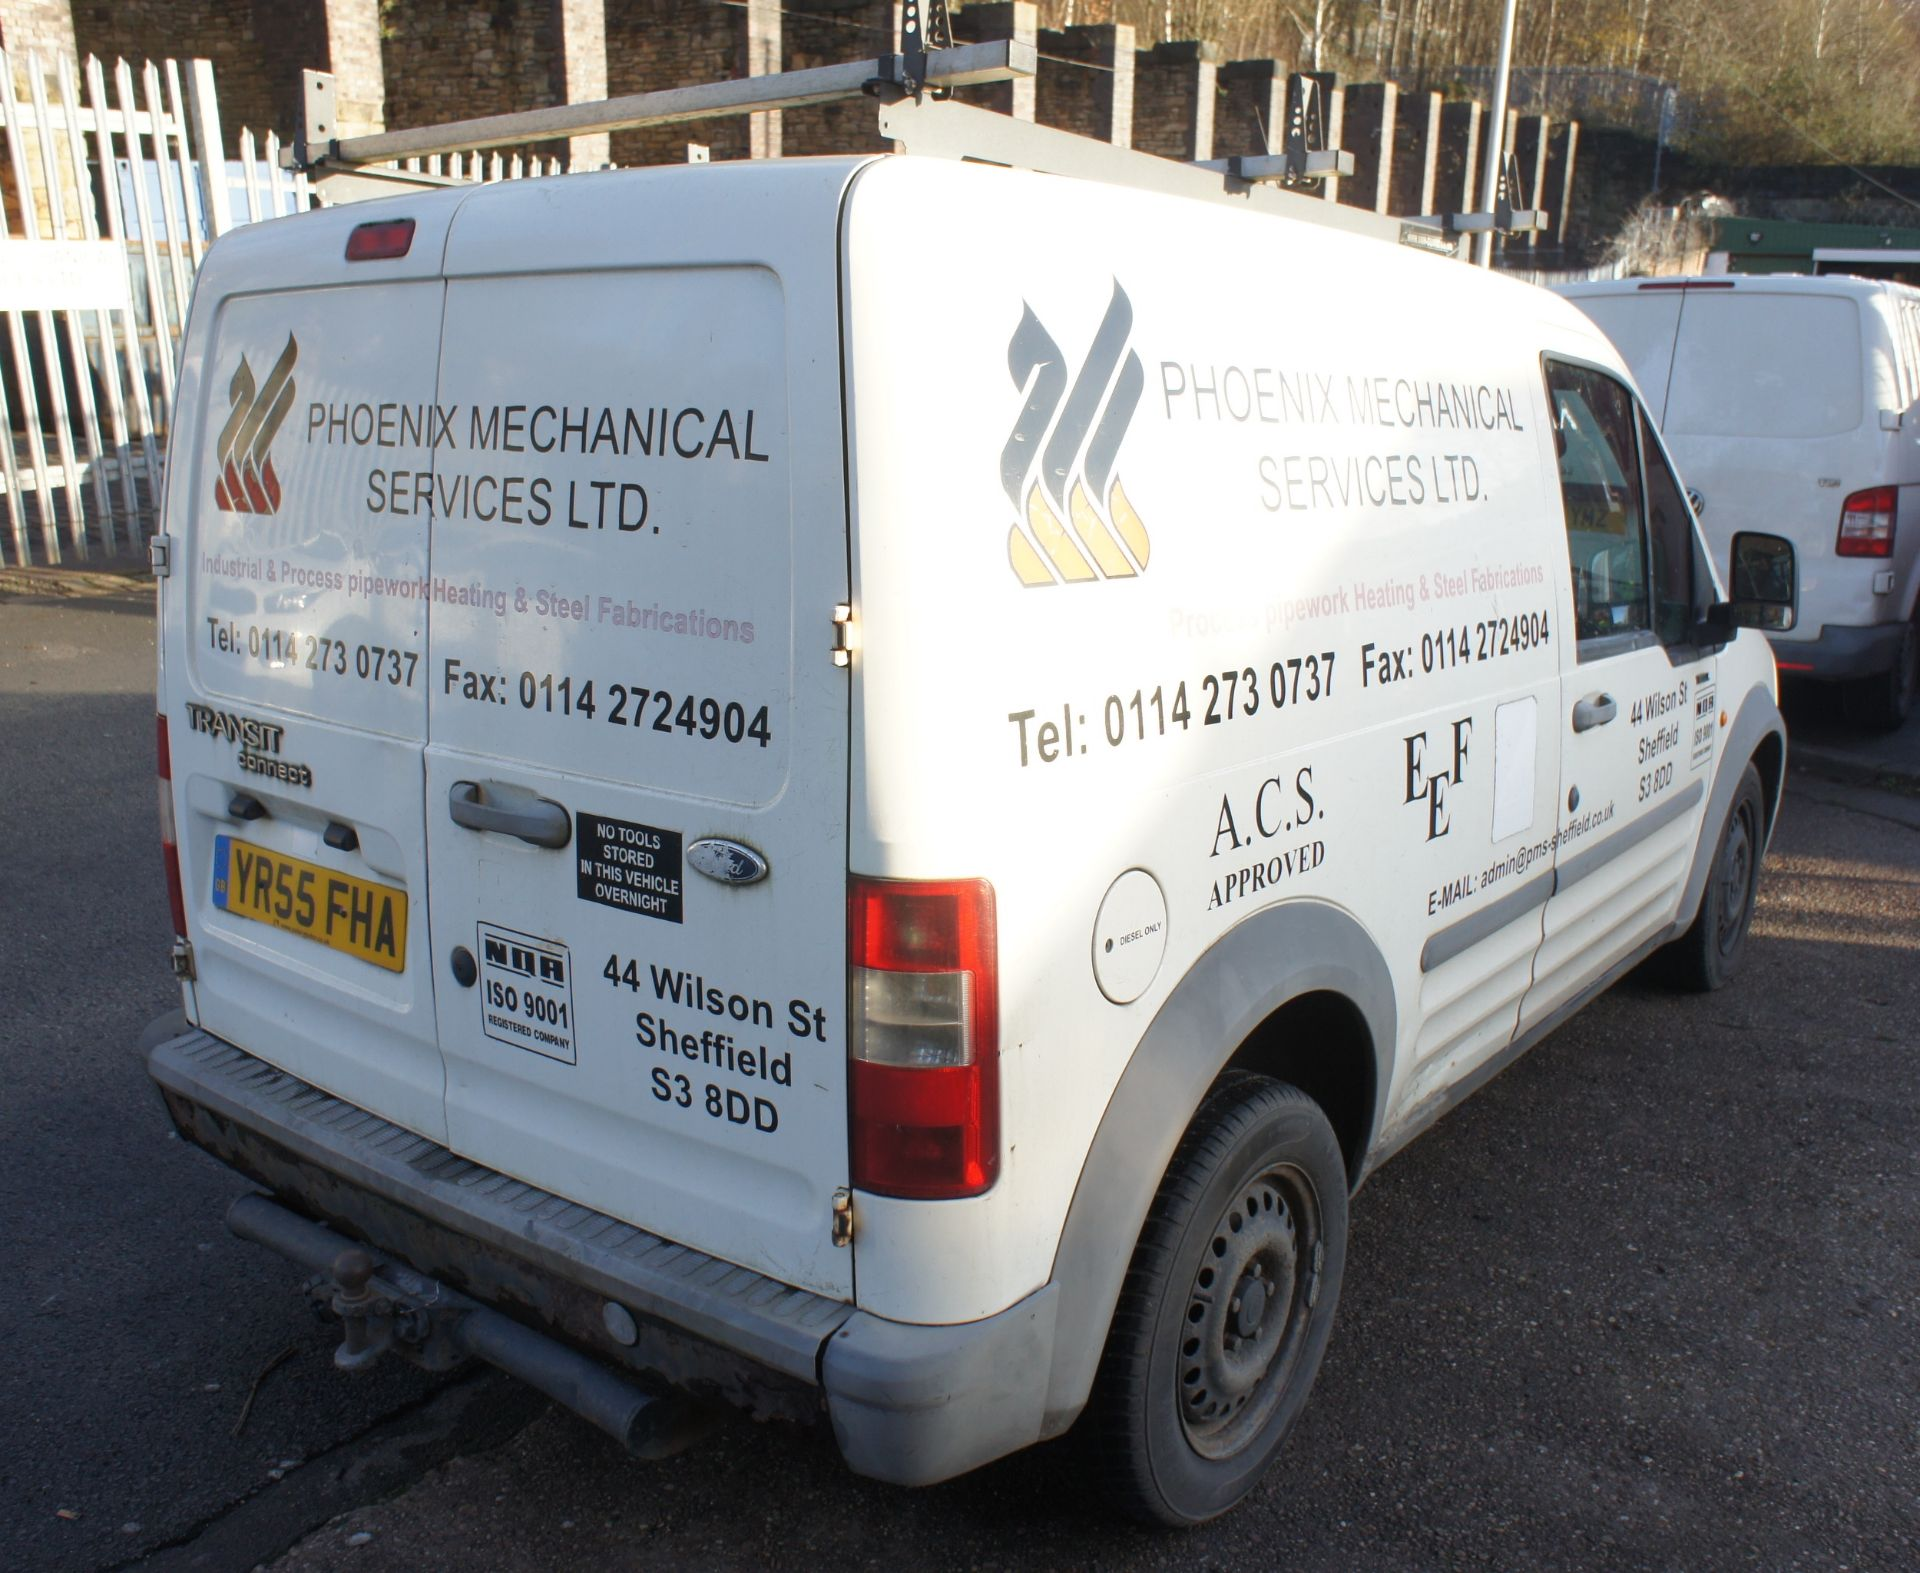 Ford Transit Connect 200 SWB low roof Van, diesel, - Image 4 of 10